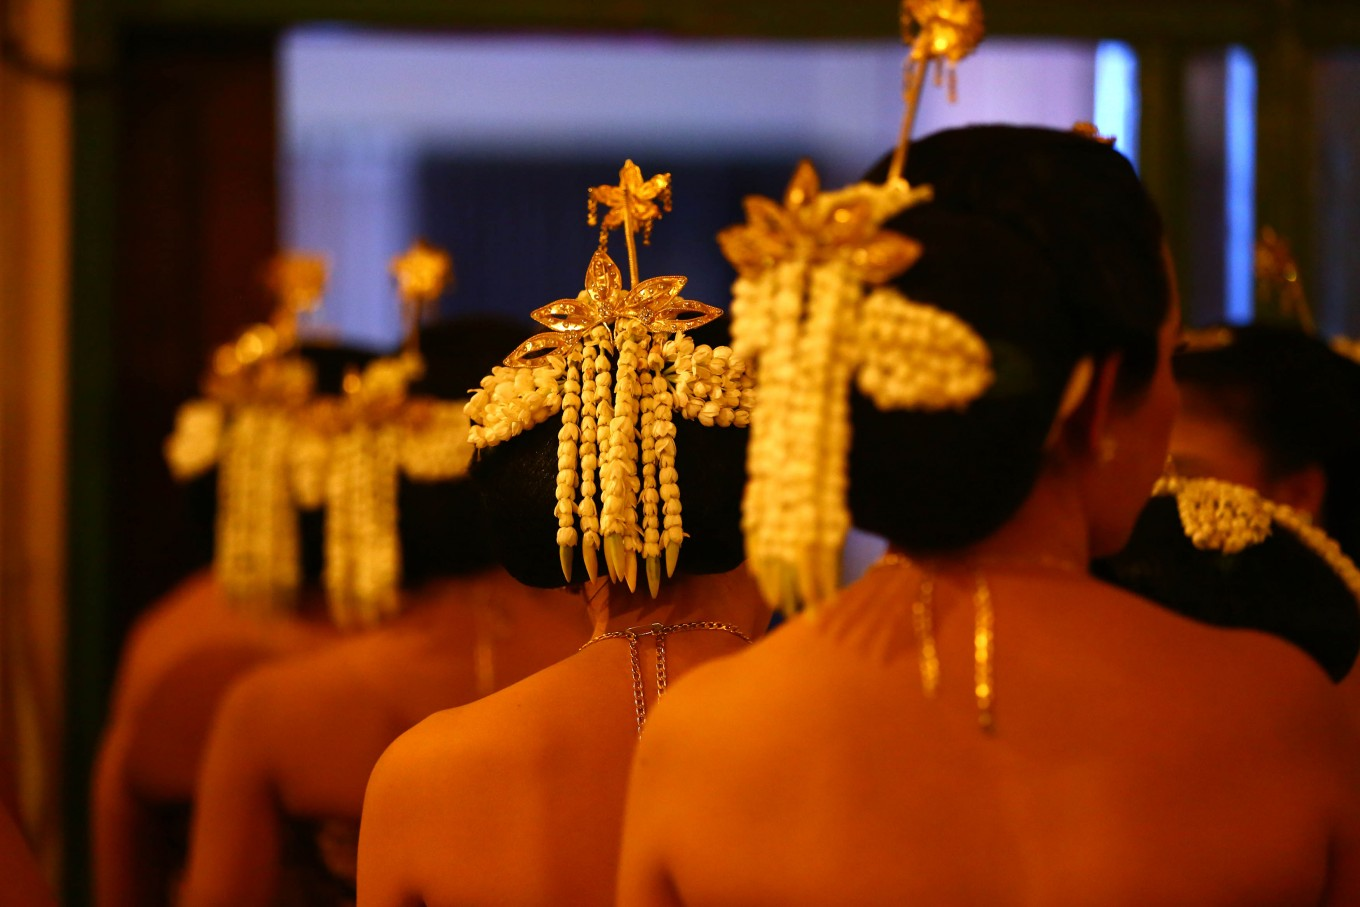 Spreading fragnance: Jasmine flowers decorate the heads of Bedhaya Menik dancers during the performance at Balai Sarwono in South Jakarta on May 31. JP/ Wienda Parwitasari